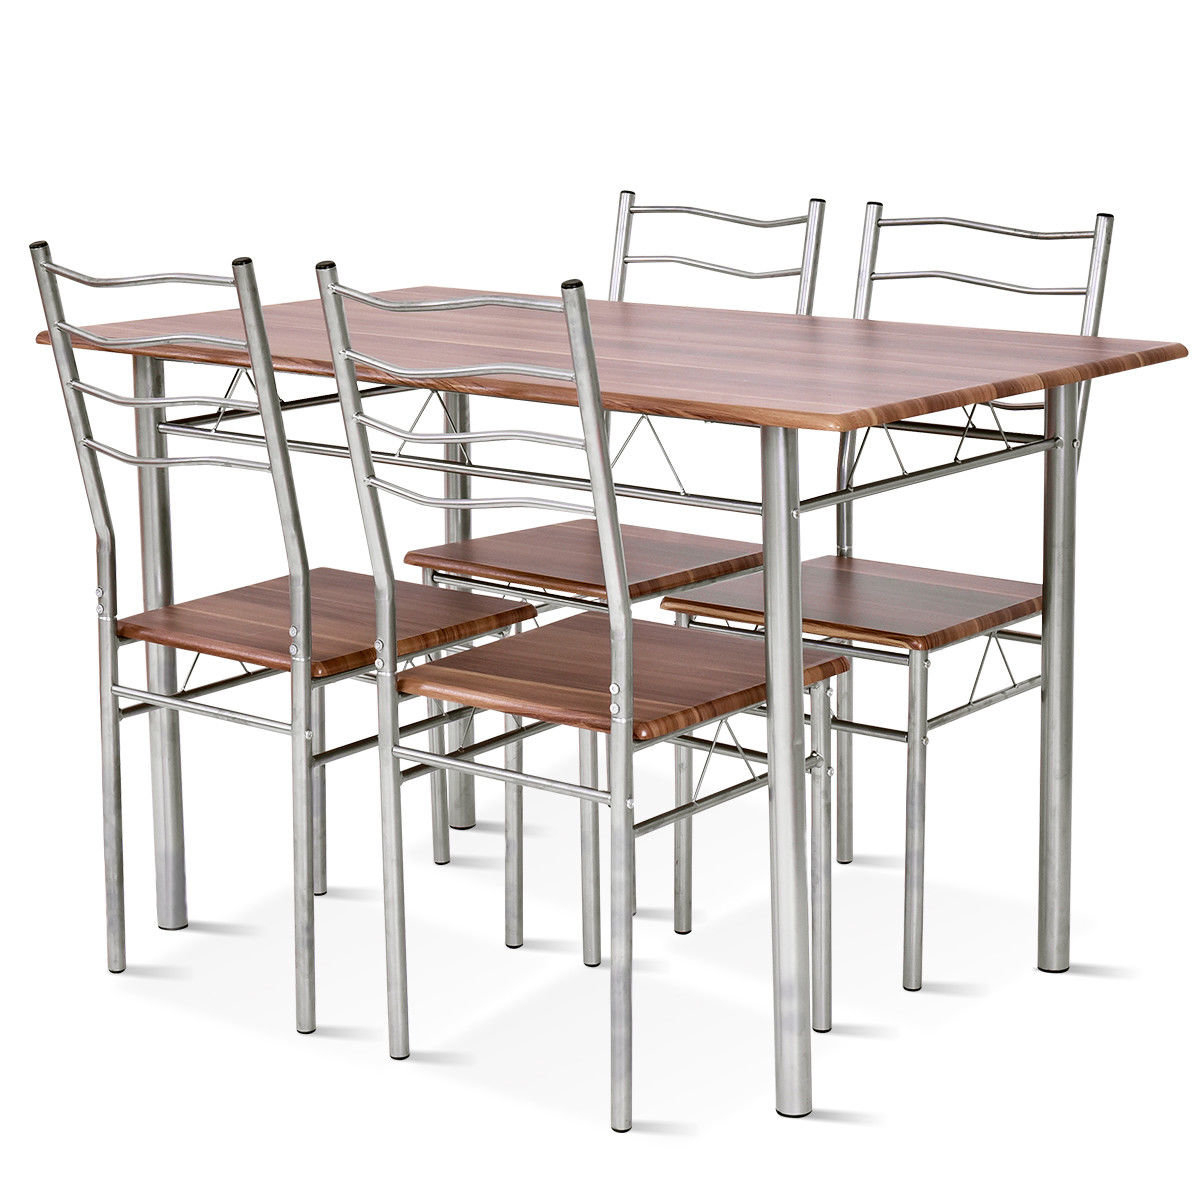 Casiano 5 Piece Dining Set With Regard To Recent Casiano 5 Piece Dining Sets (Photo 1 of 20)